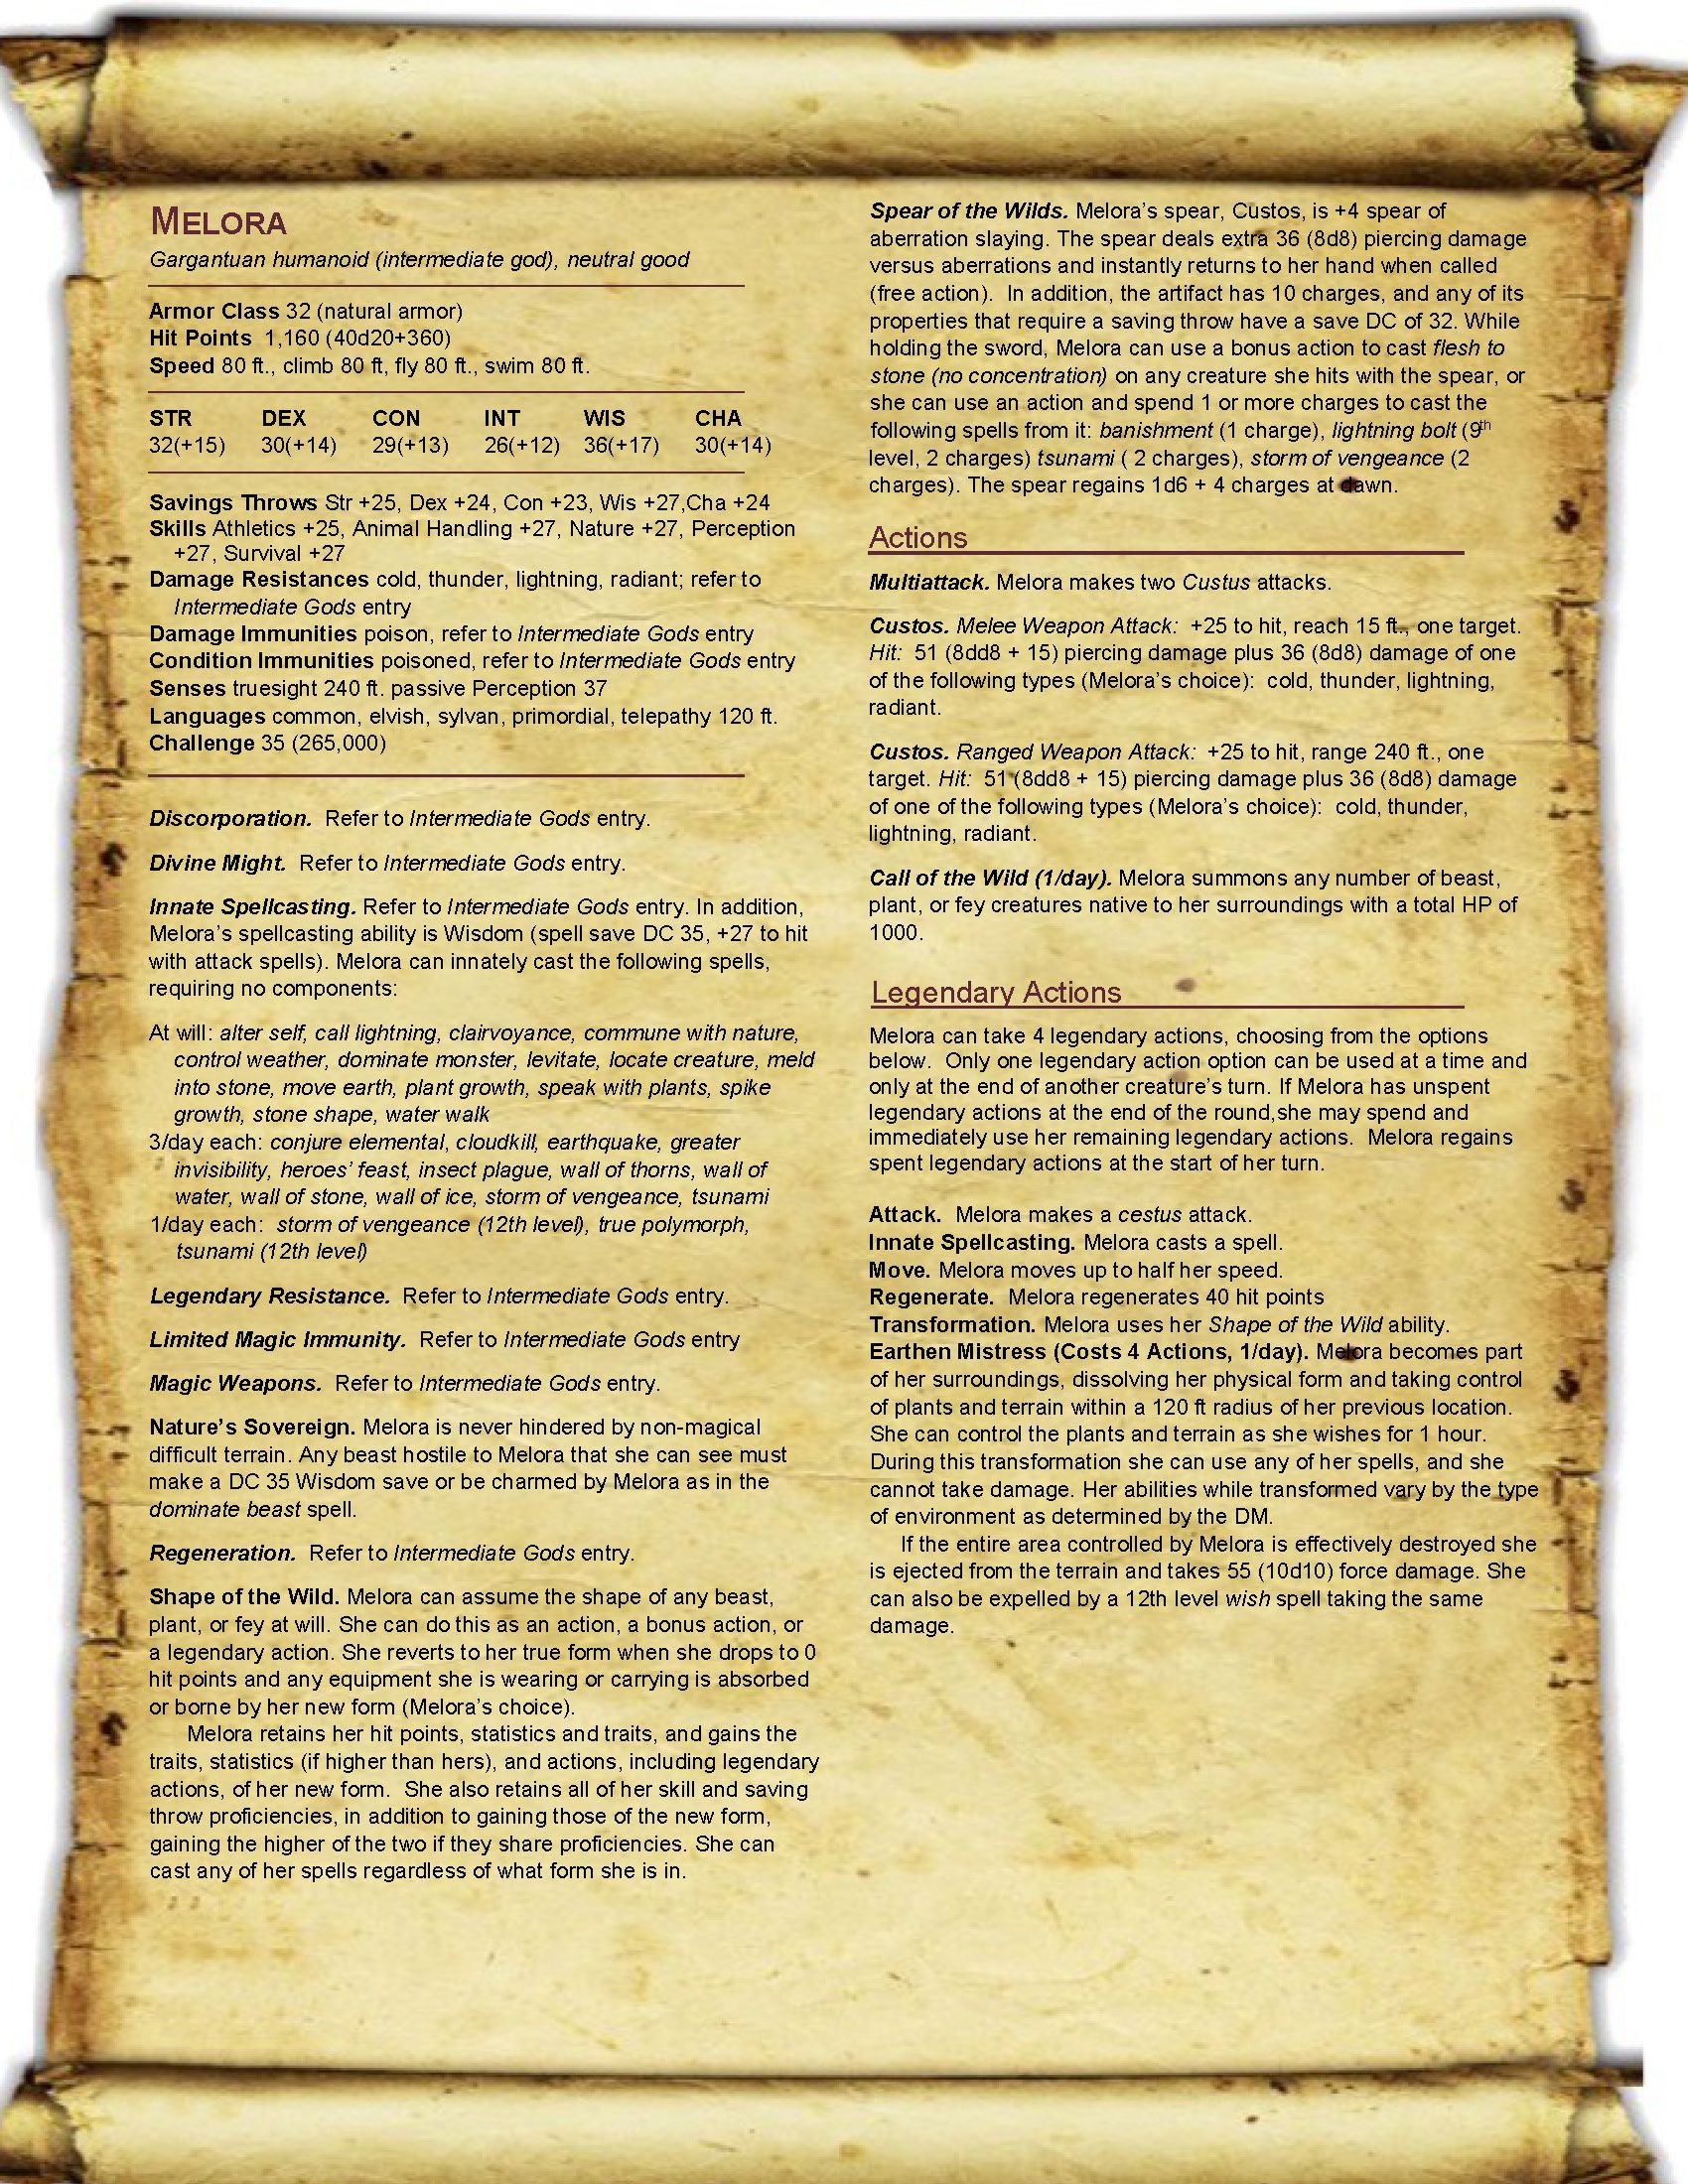 Pin by Mark McGovern on Pathfinder RPG | Dnd dragons, Dnd